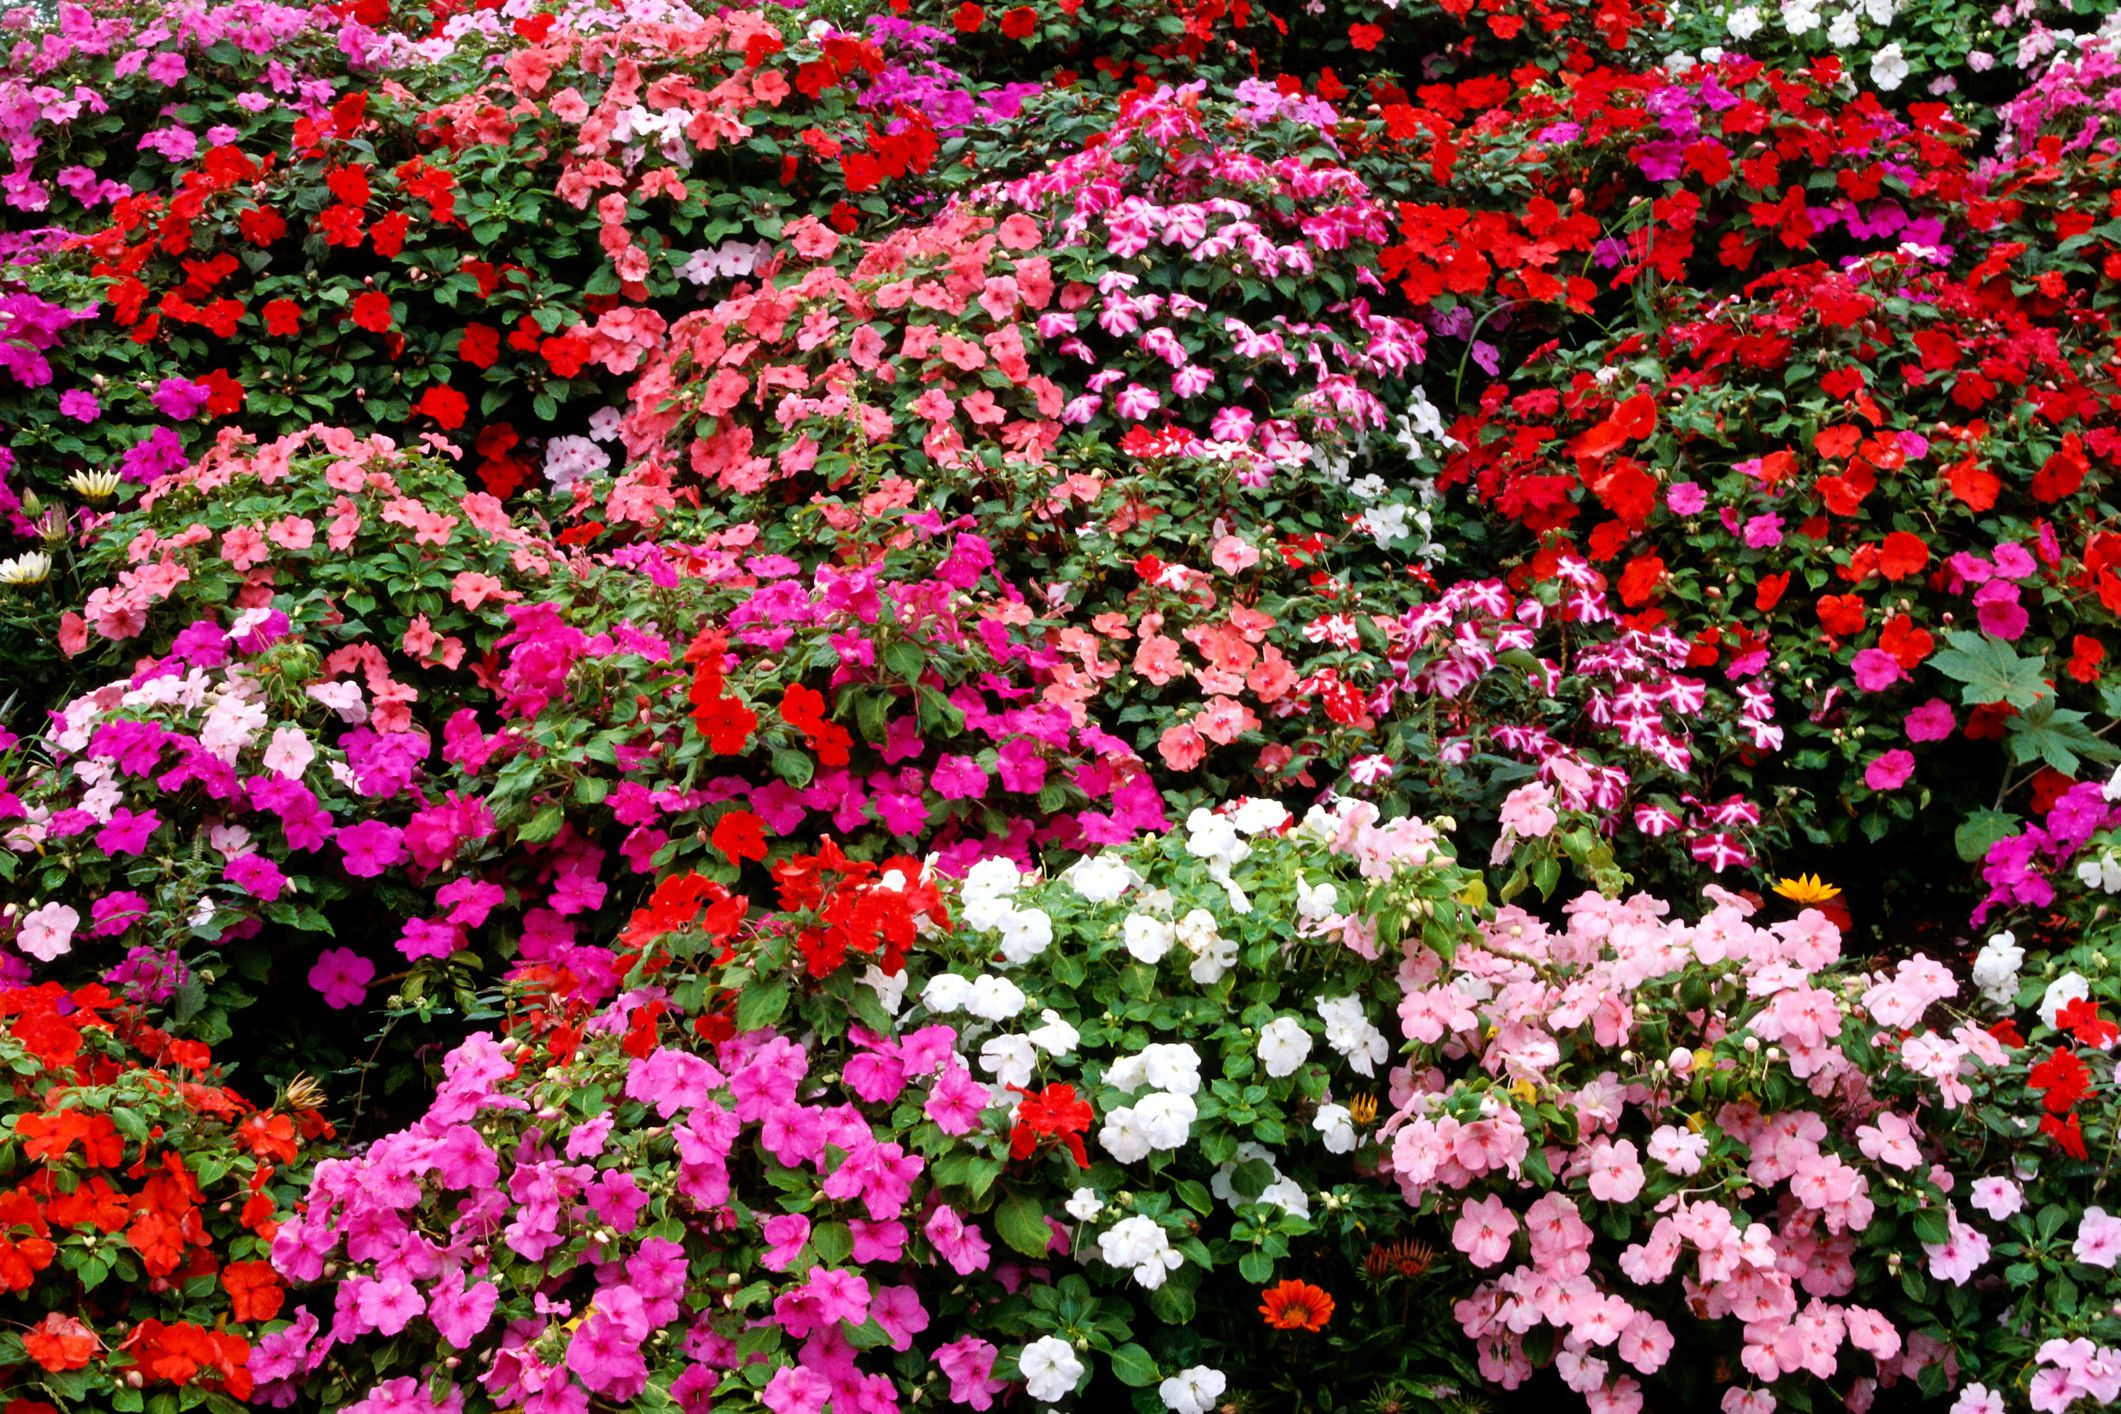 Impatiens Bring Bright Colors To Shady Areas